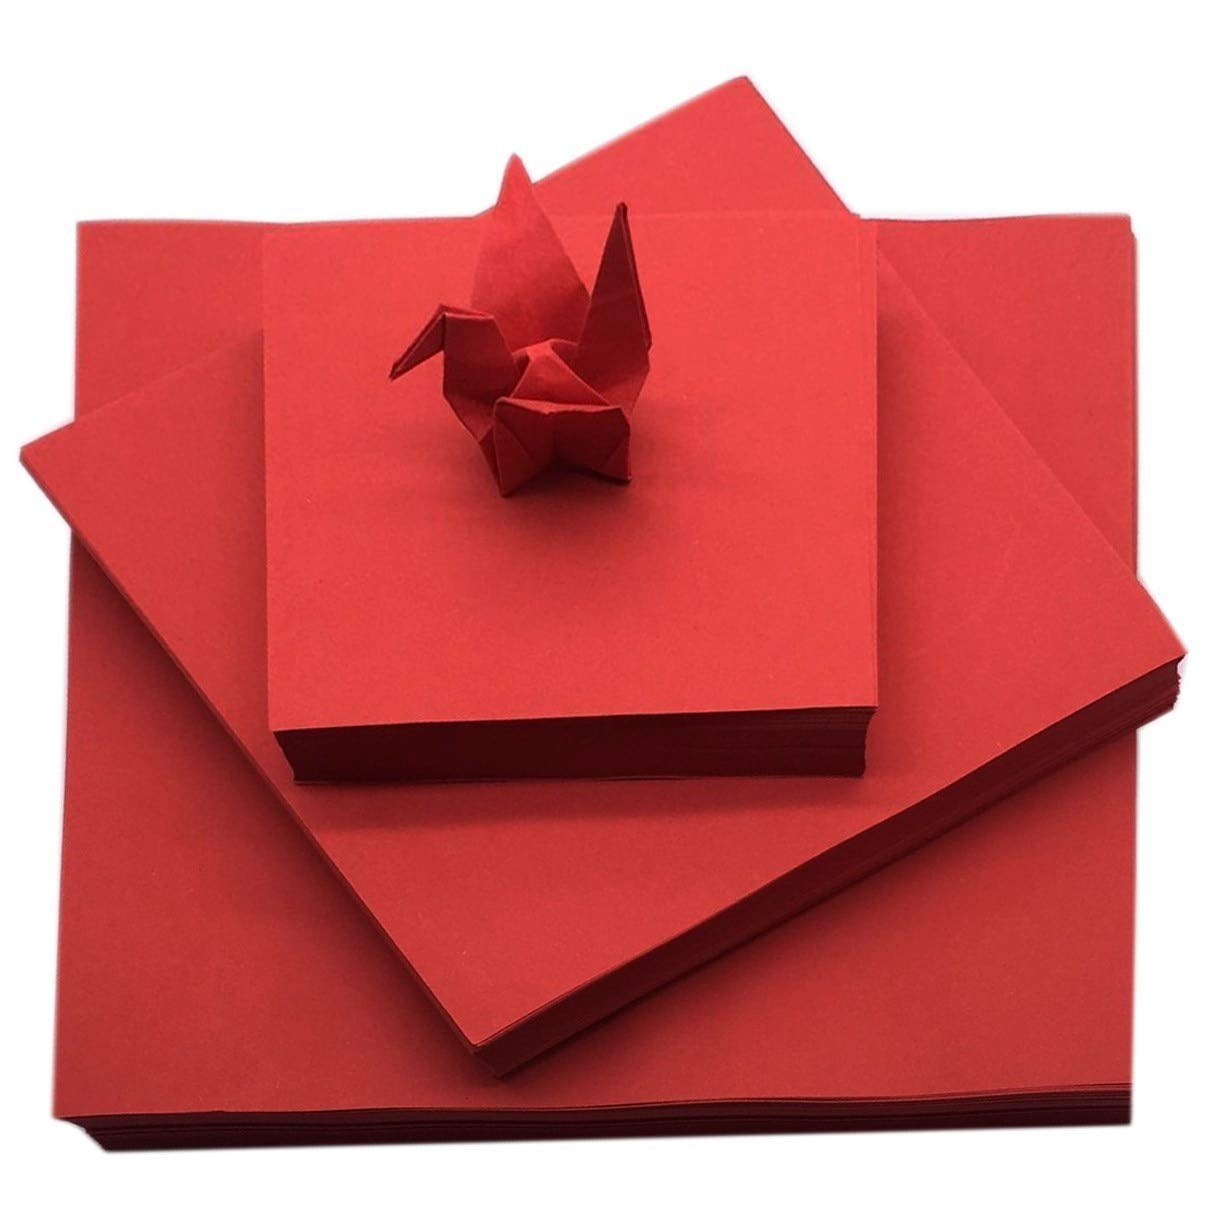 Gift Wrapping Paper - 200pcs Red Origami Handmade Kraft Paper Double-Sided Dark Red Origami Love Heart Square Origami DIY Scrapbooking Craft Paper by Gift Wrapping Paper